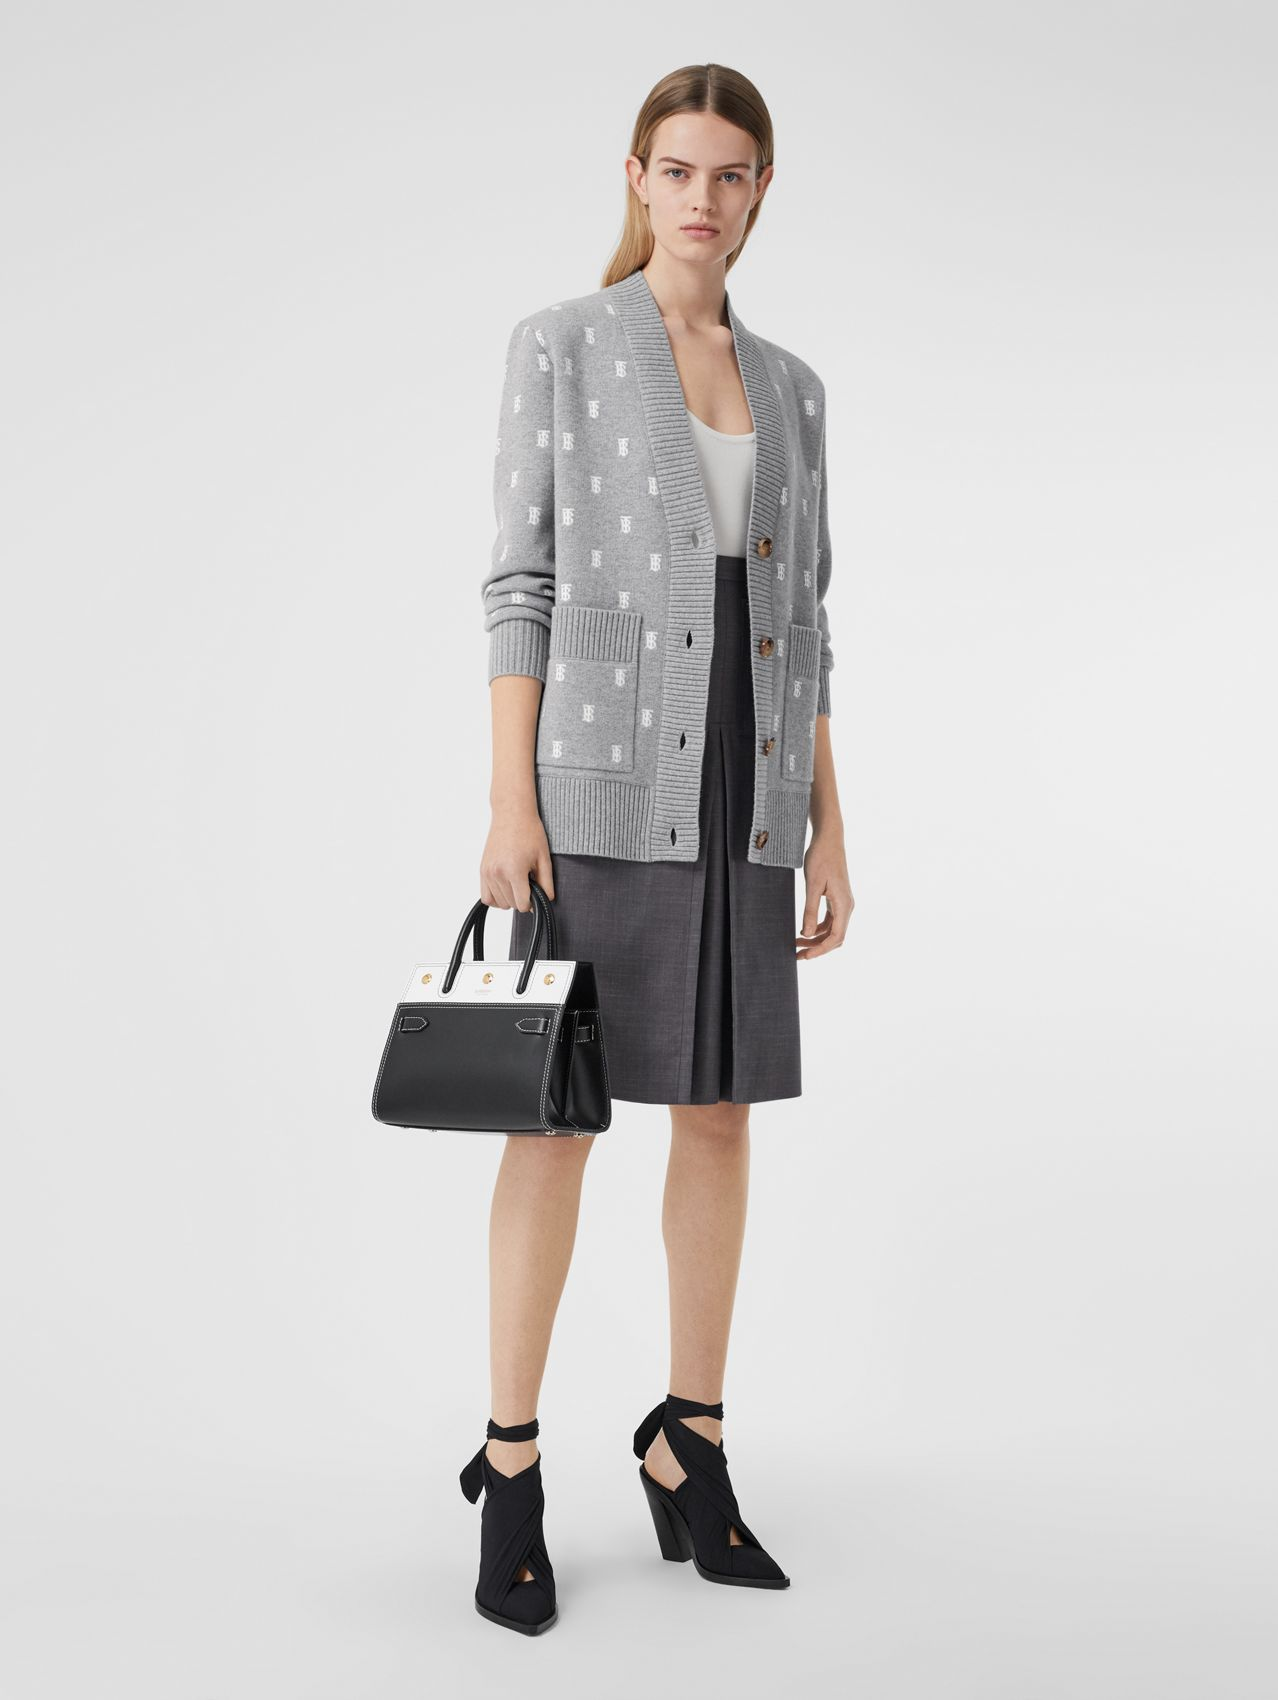 Monogram Wool Cashmere Blend Oversized Cardigan in Mid Grey Melange